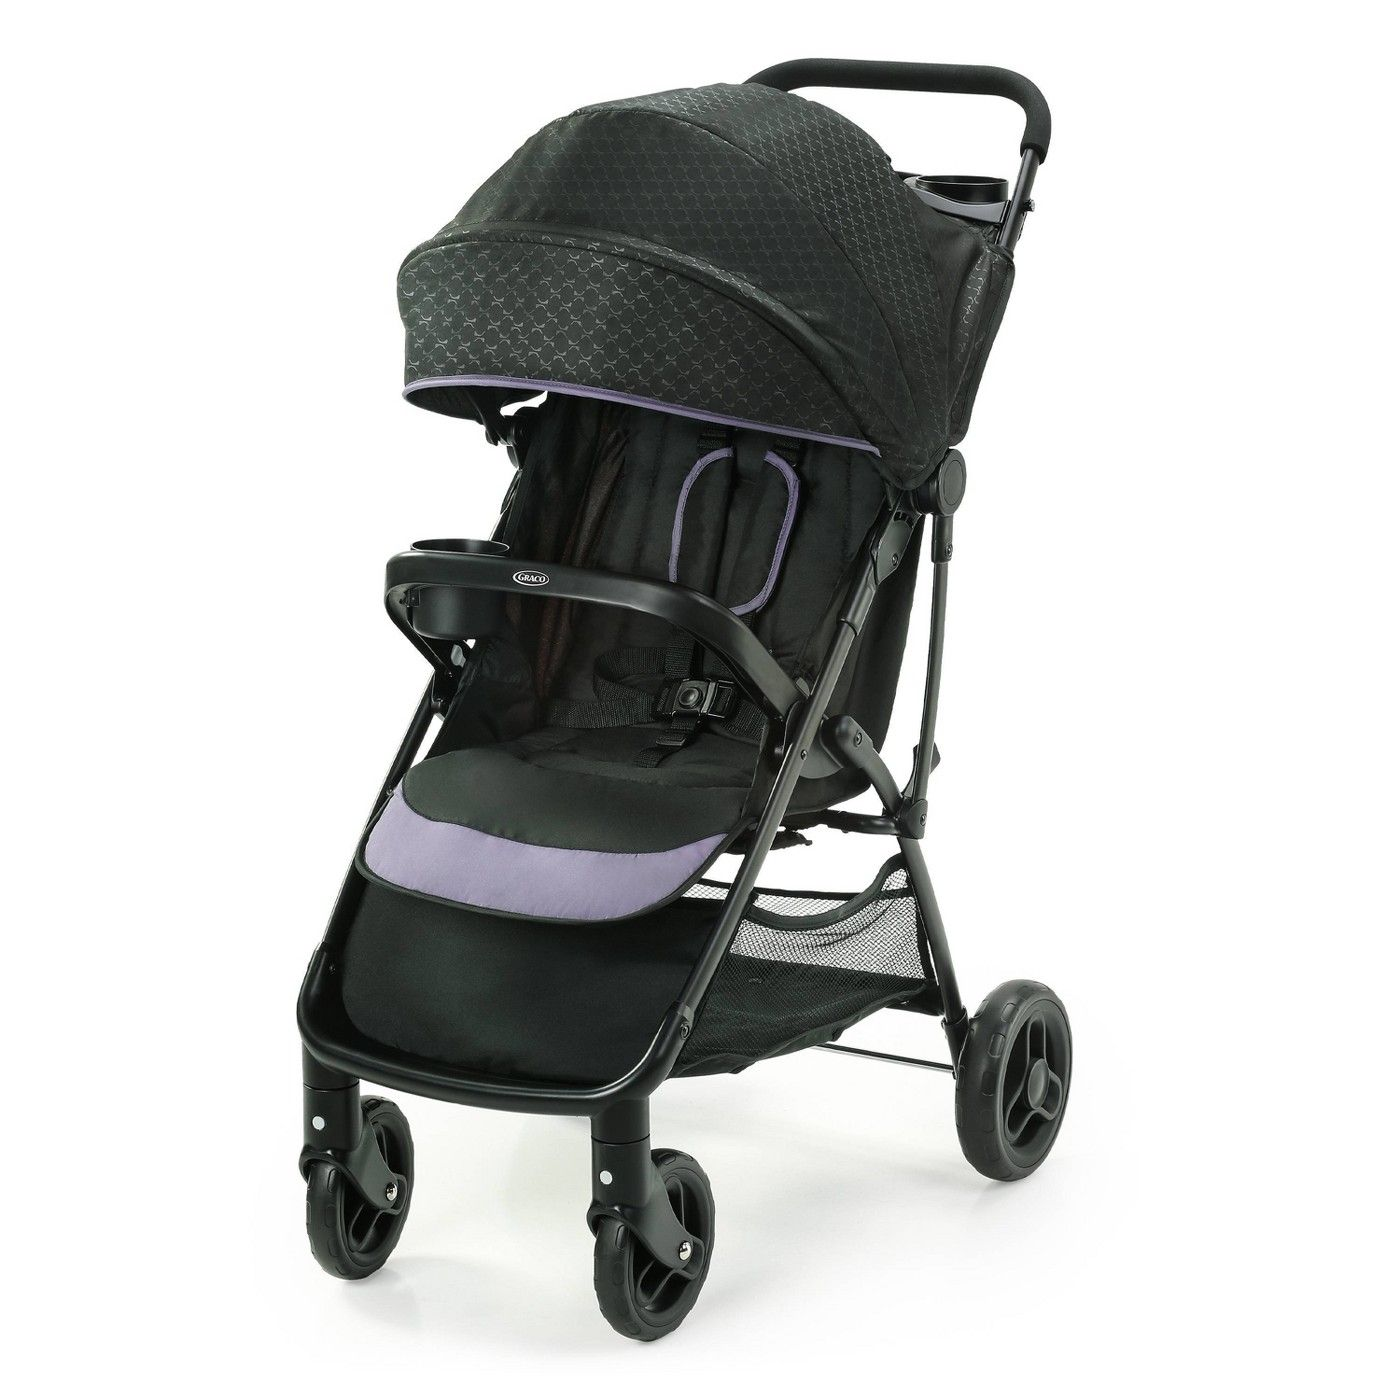 Simplicity Black Baby car seats, Best lightweight